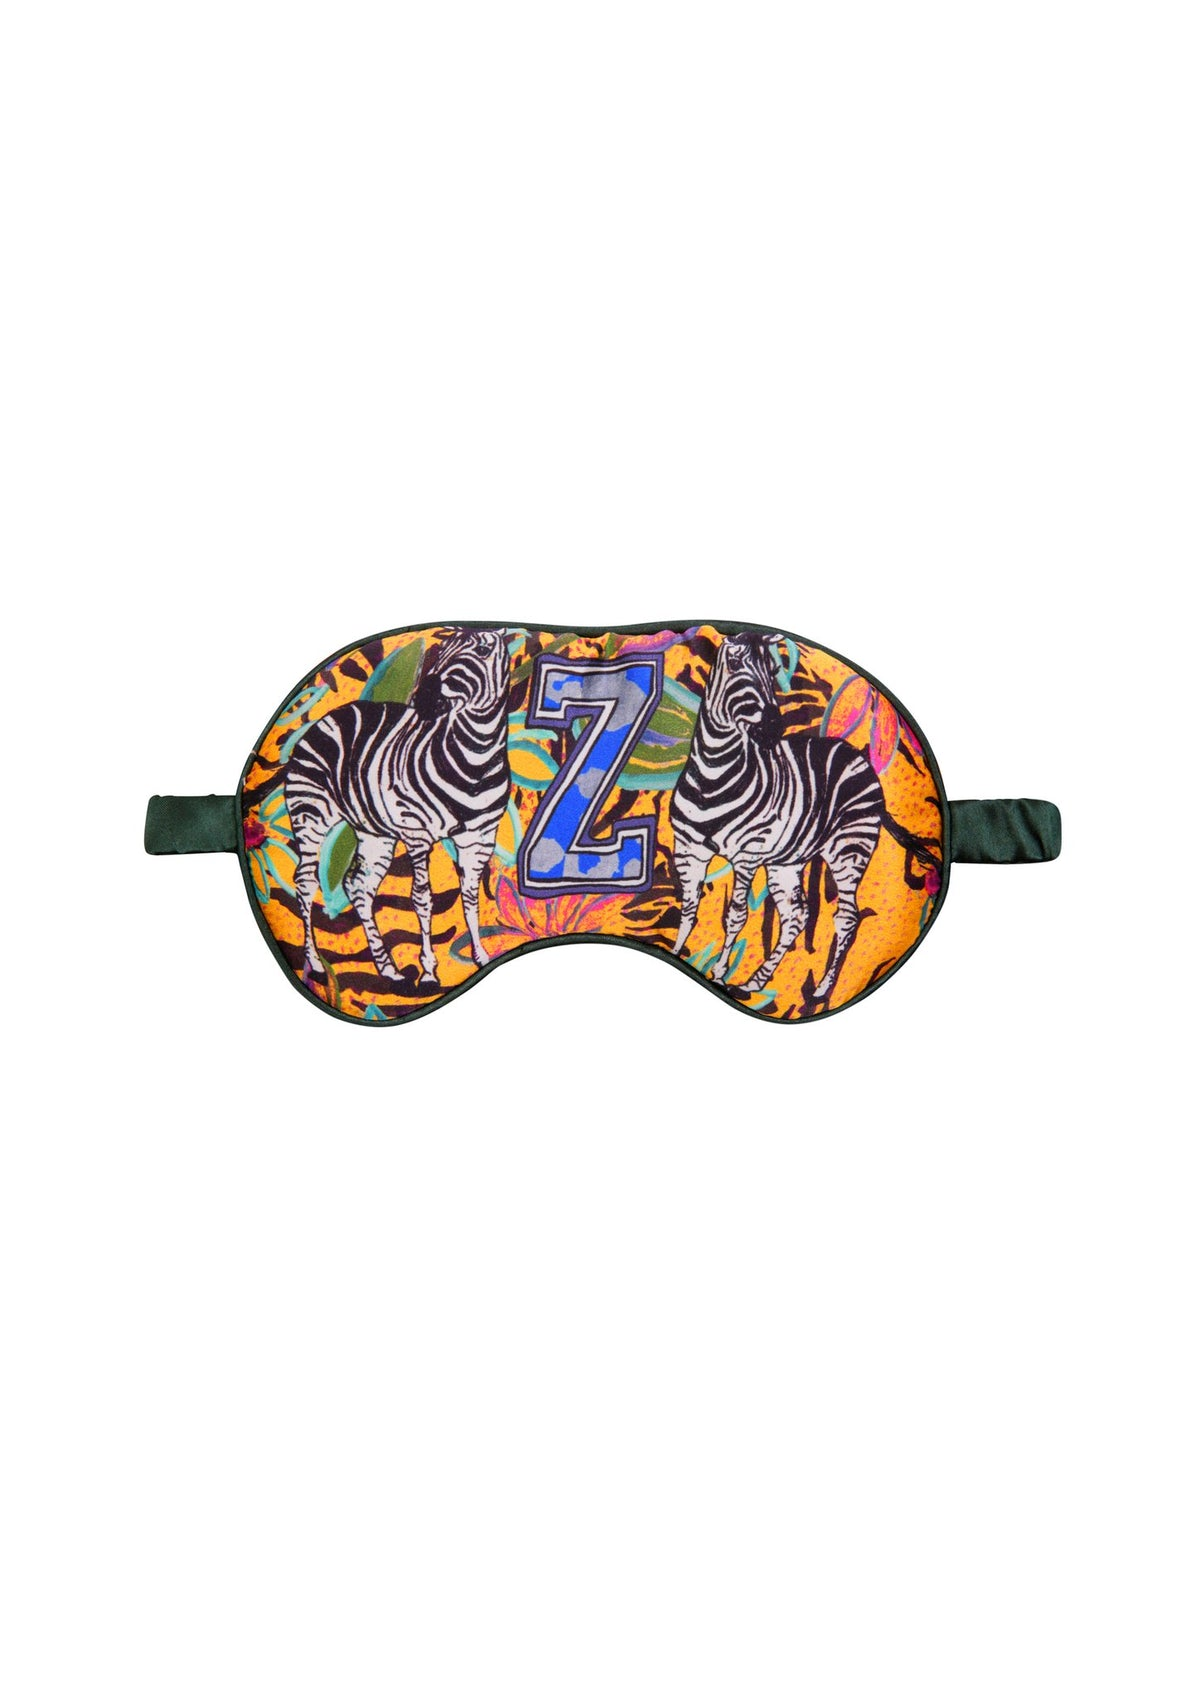 Silk Alphabet Eye Mask - Z for Zebra